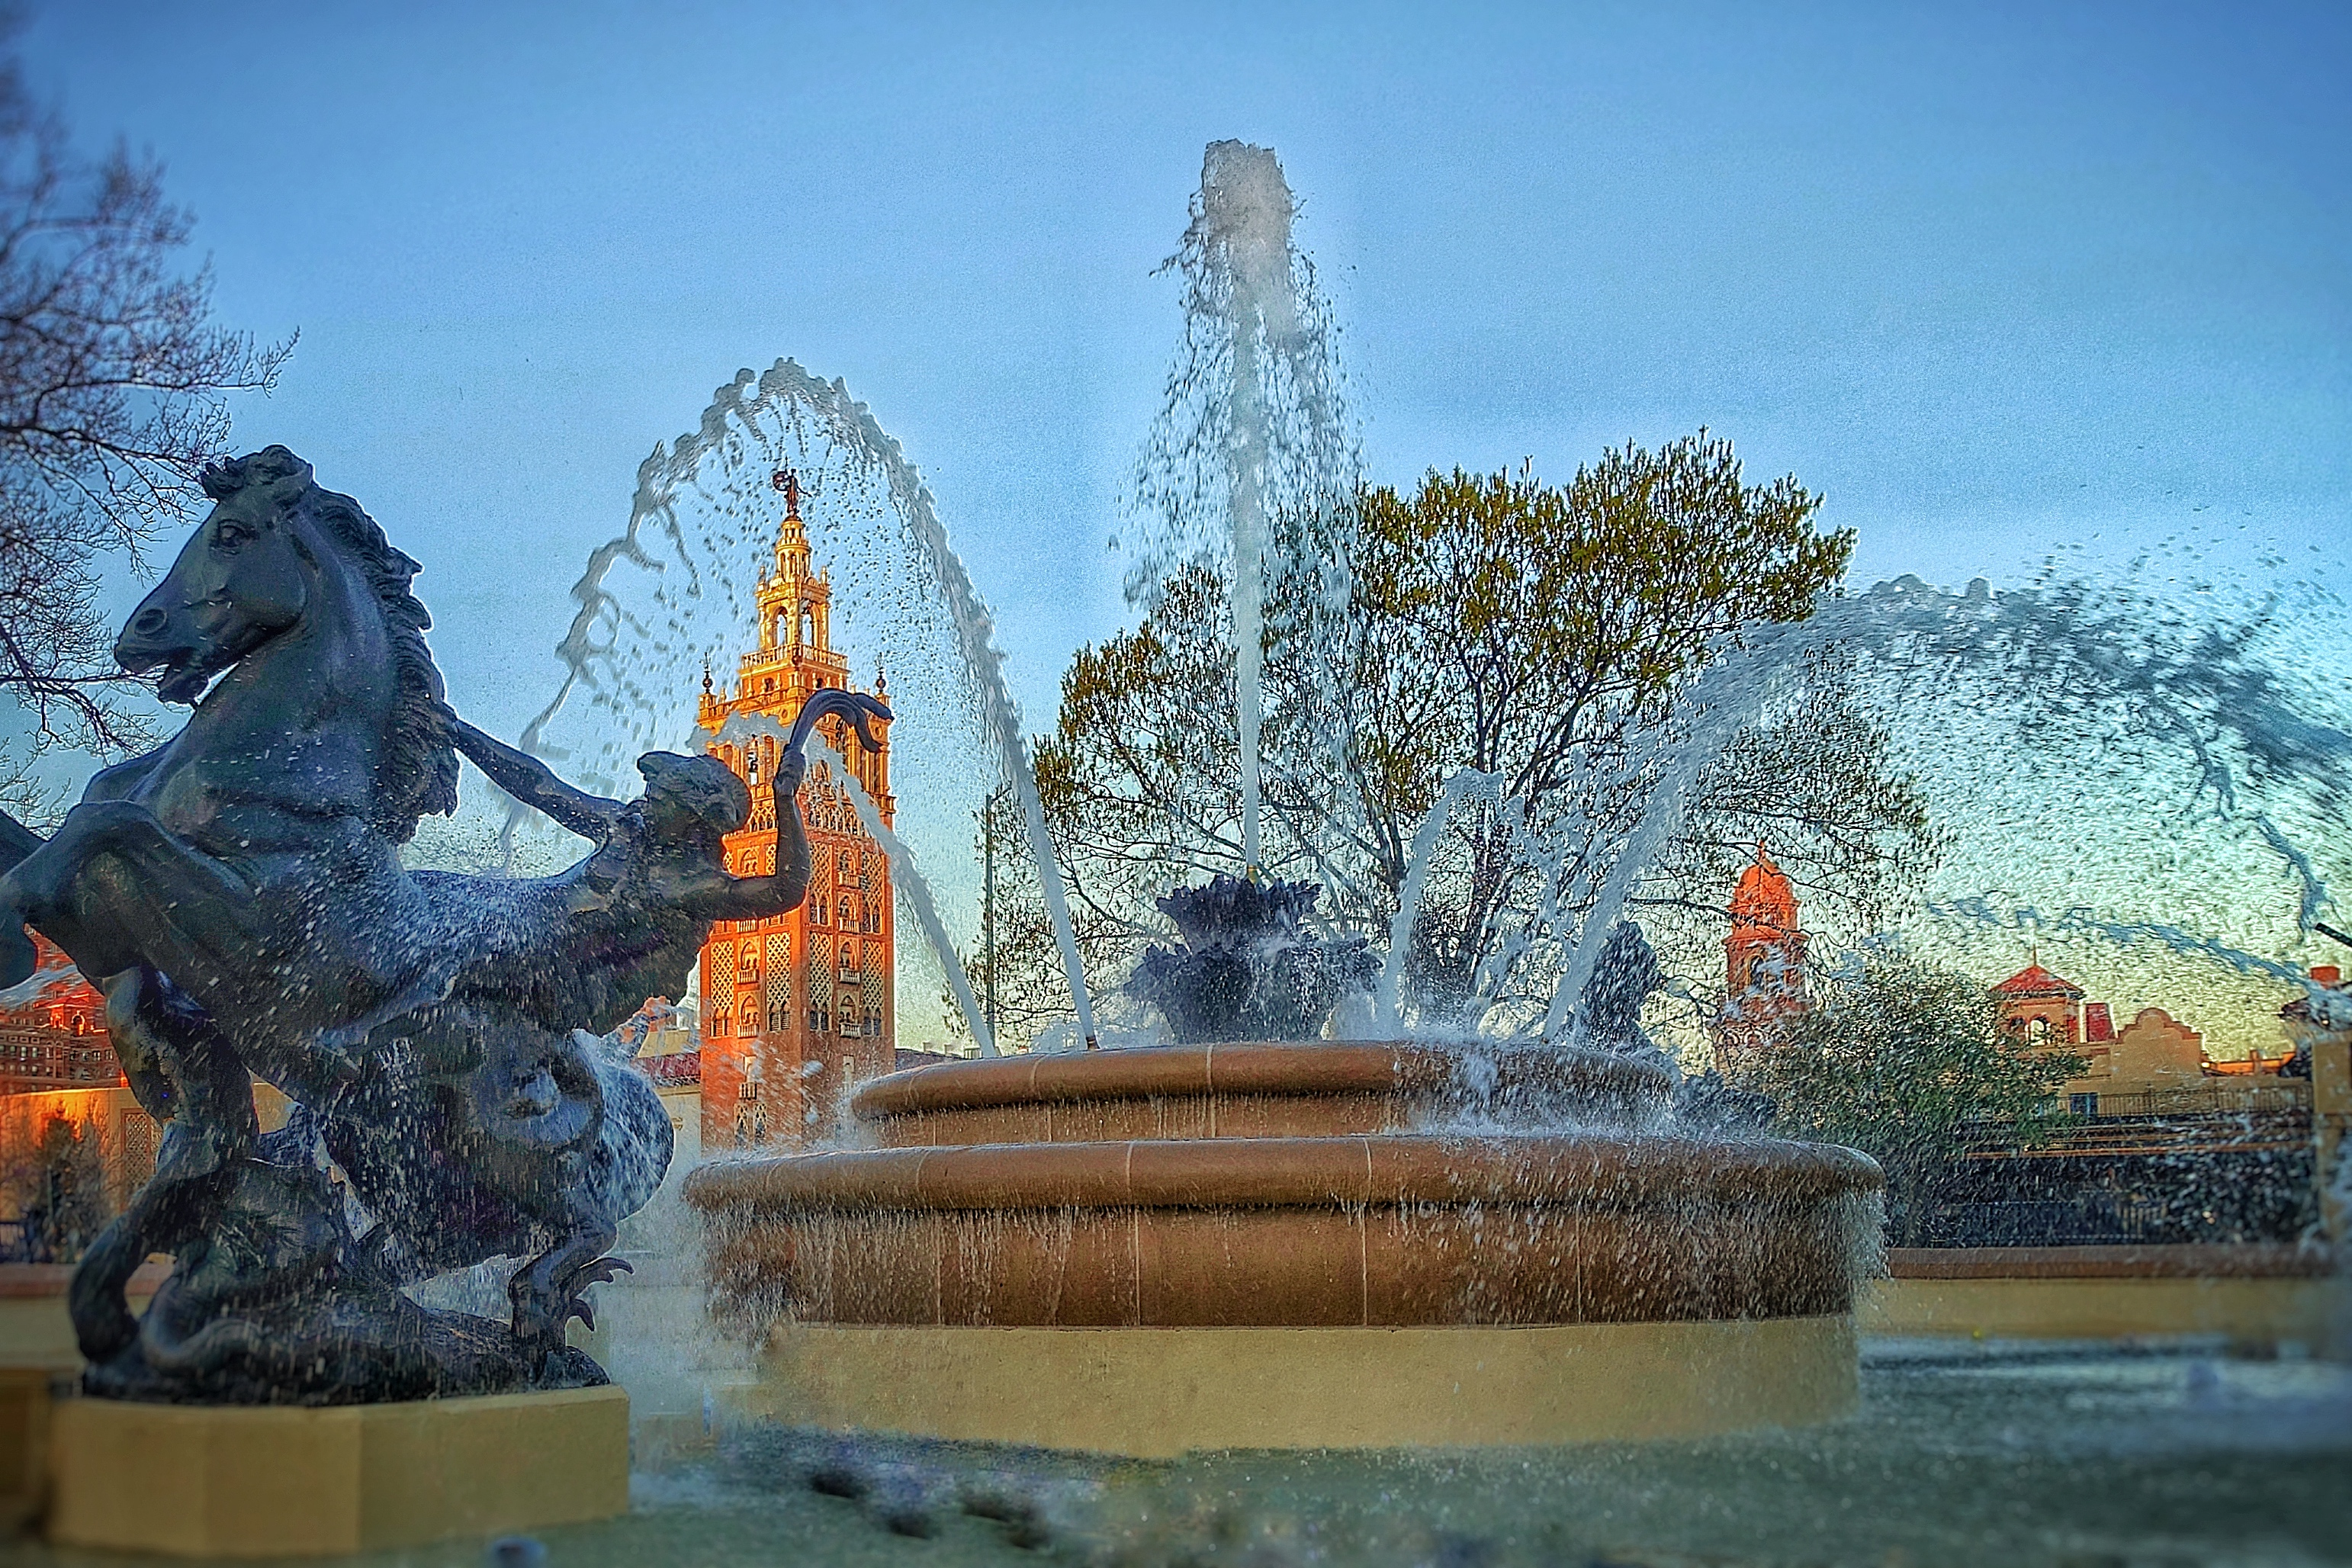 Nichols Fountain at sunrise-ZF-5322-43881-1-001-023